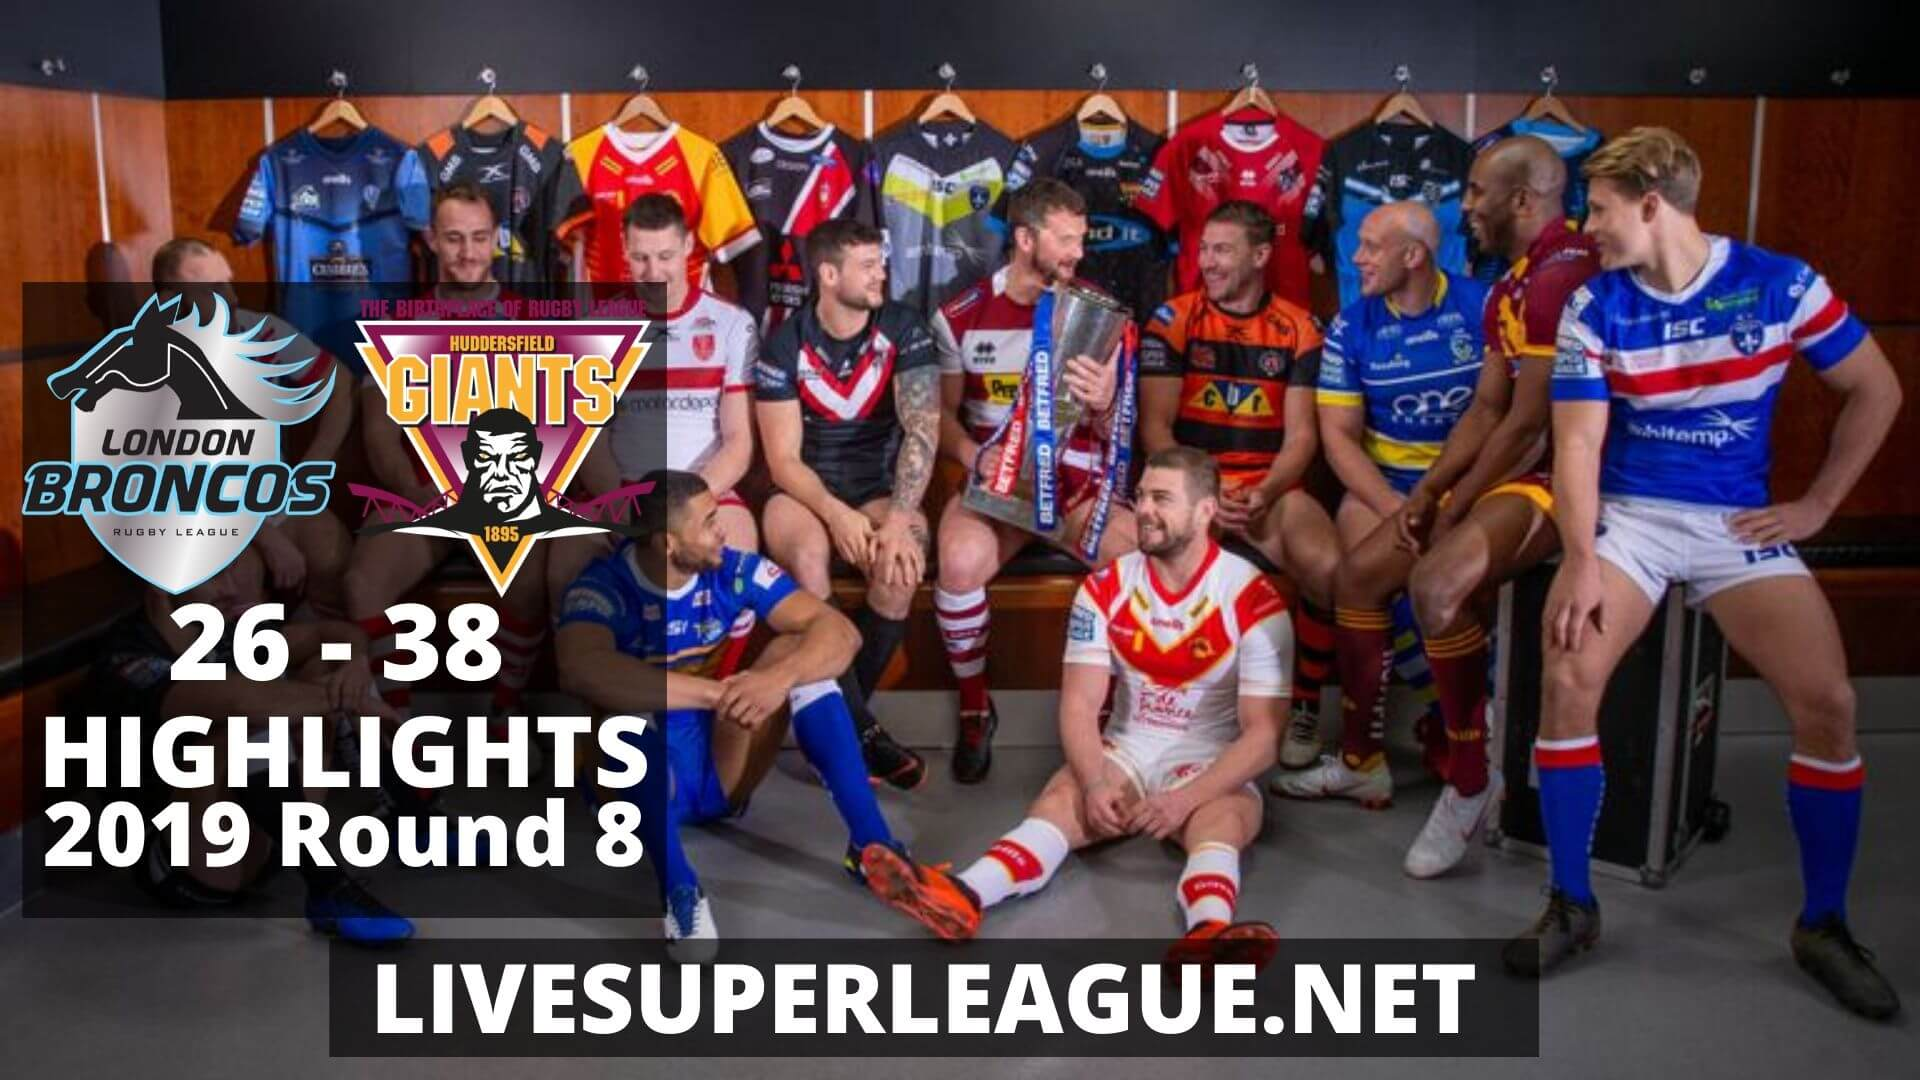 London Broncos Vs Huddersfield Giants Highlights 2019 Round 8